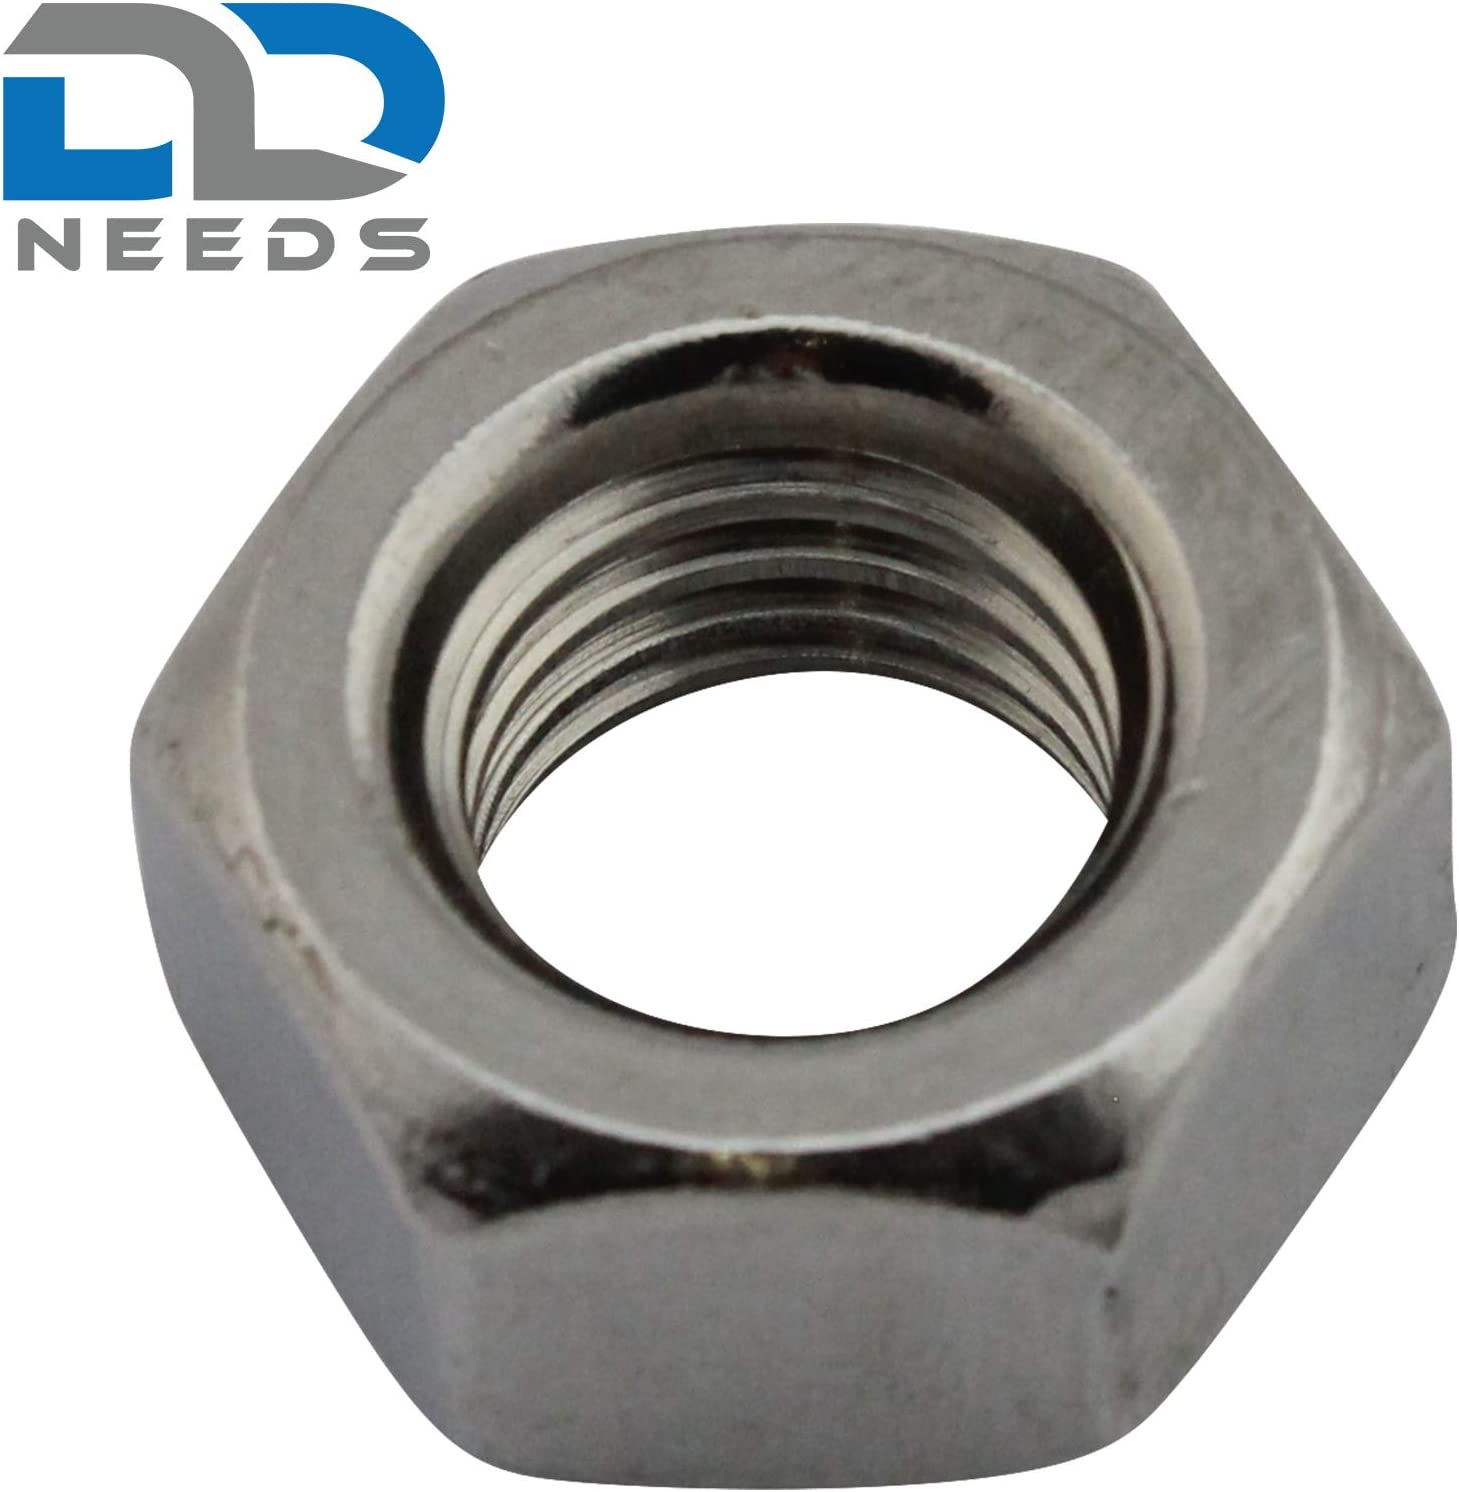 20mm M20 A2 STAINLESS STEEL METRIC HEX FULL NUTS HEXAGON NUT DIN 934